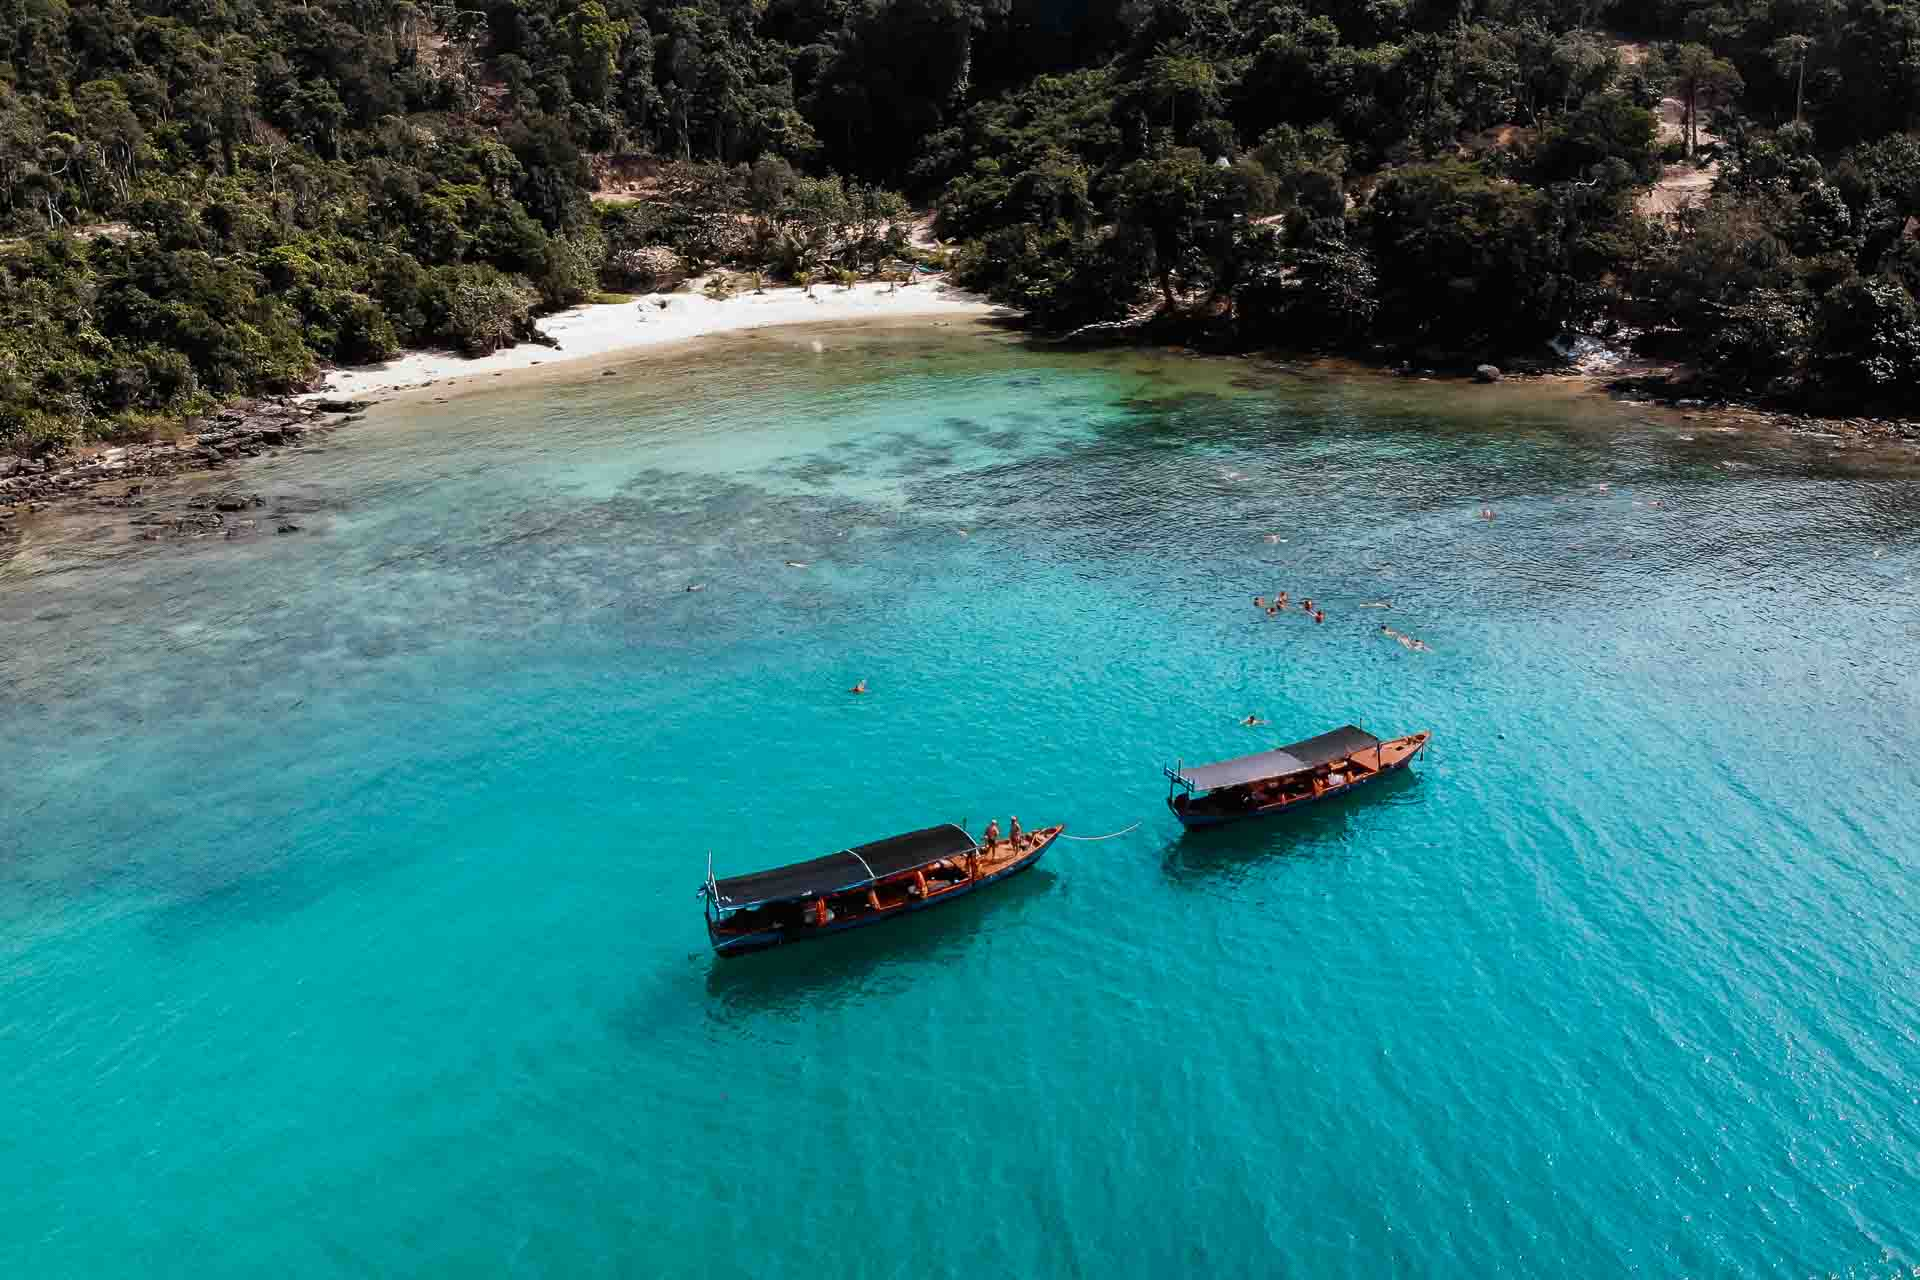 Island-hopping in Koh Rong